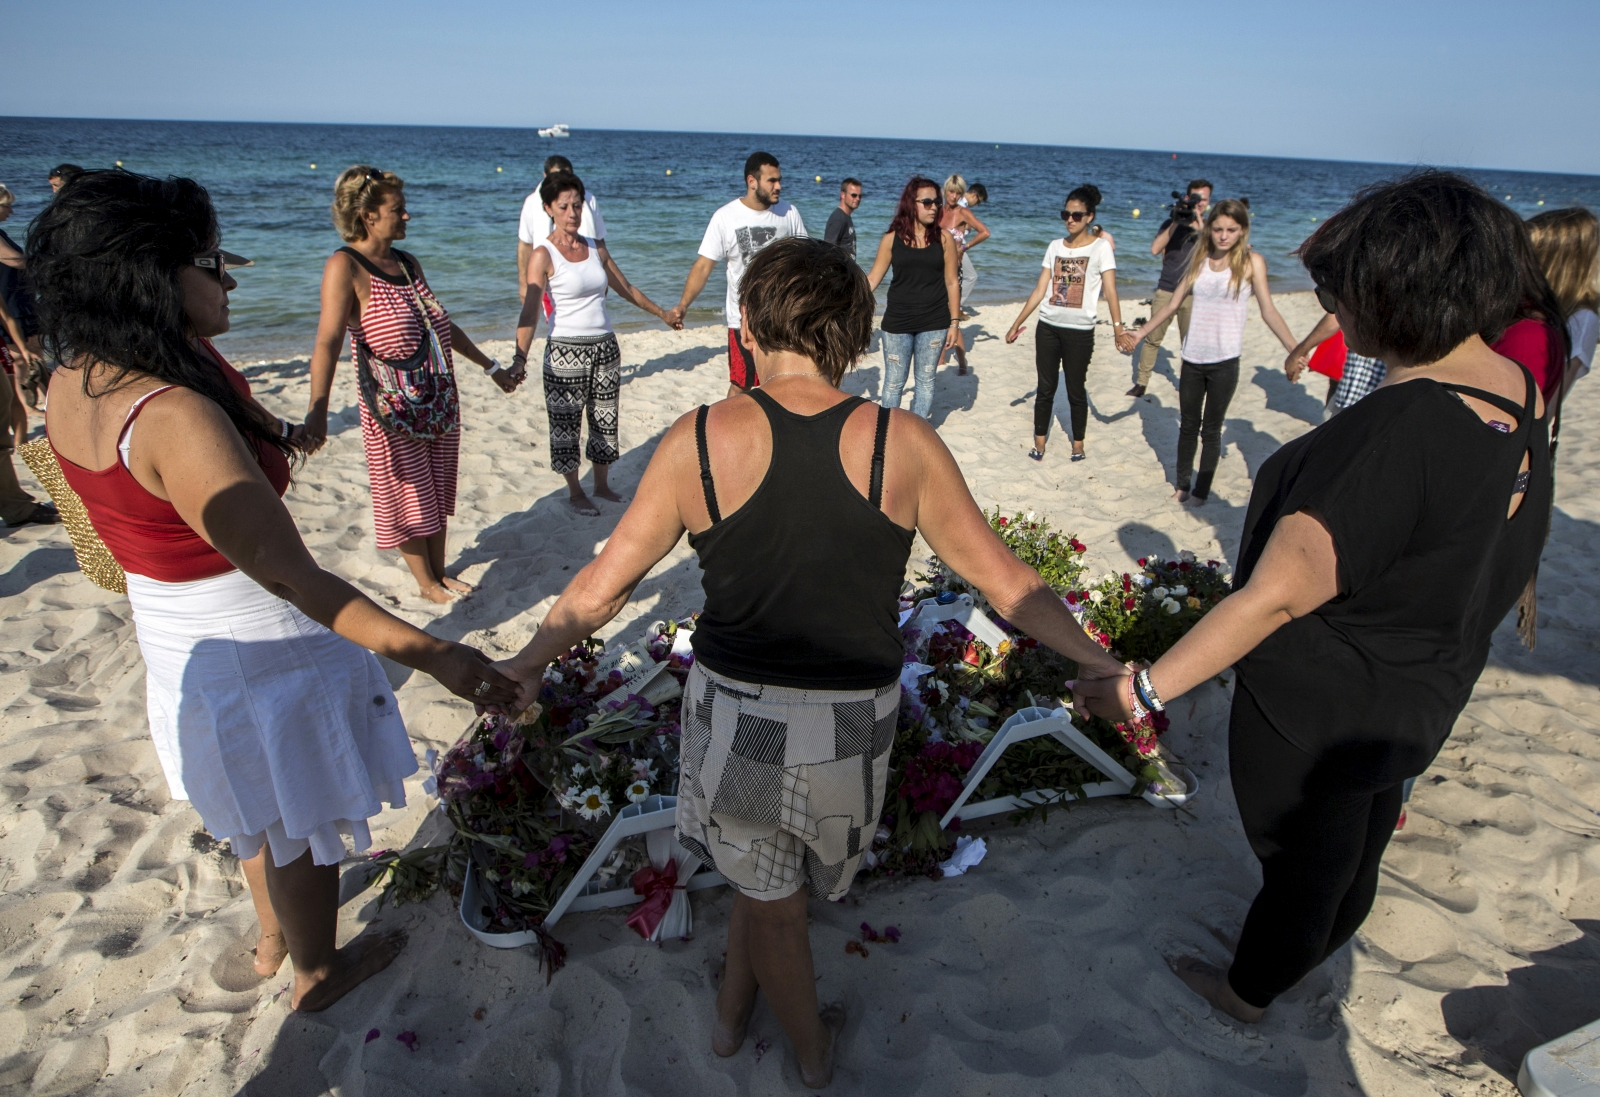 Tunisia Sousse beach attack